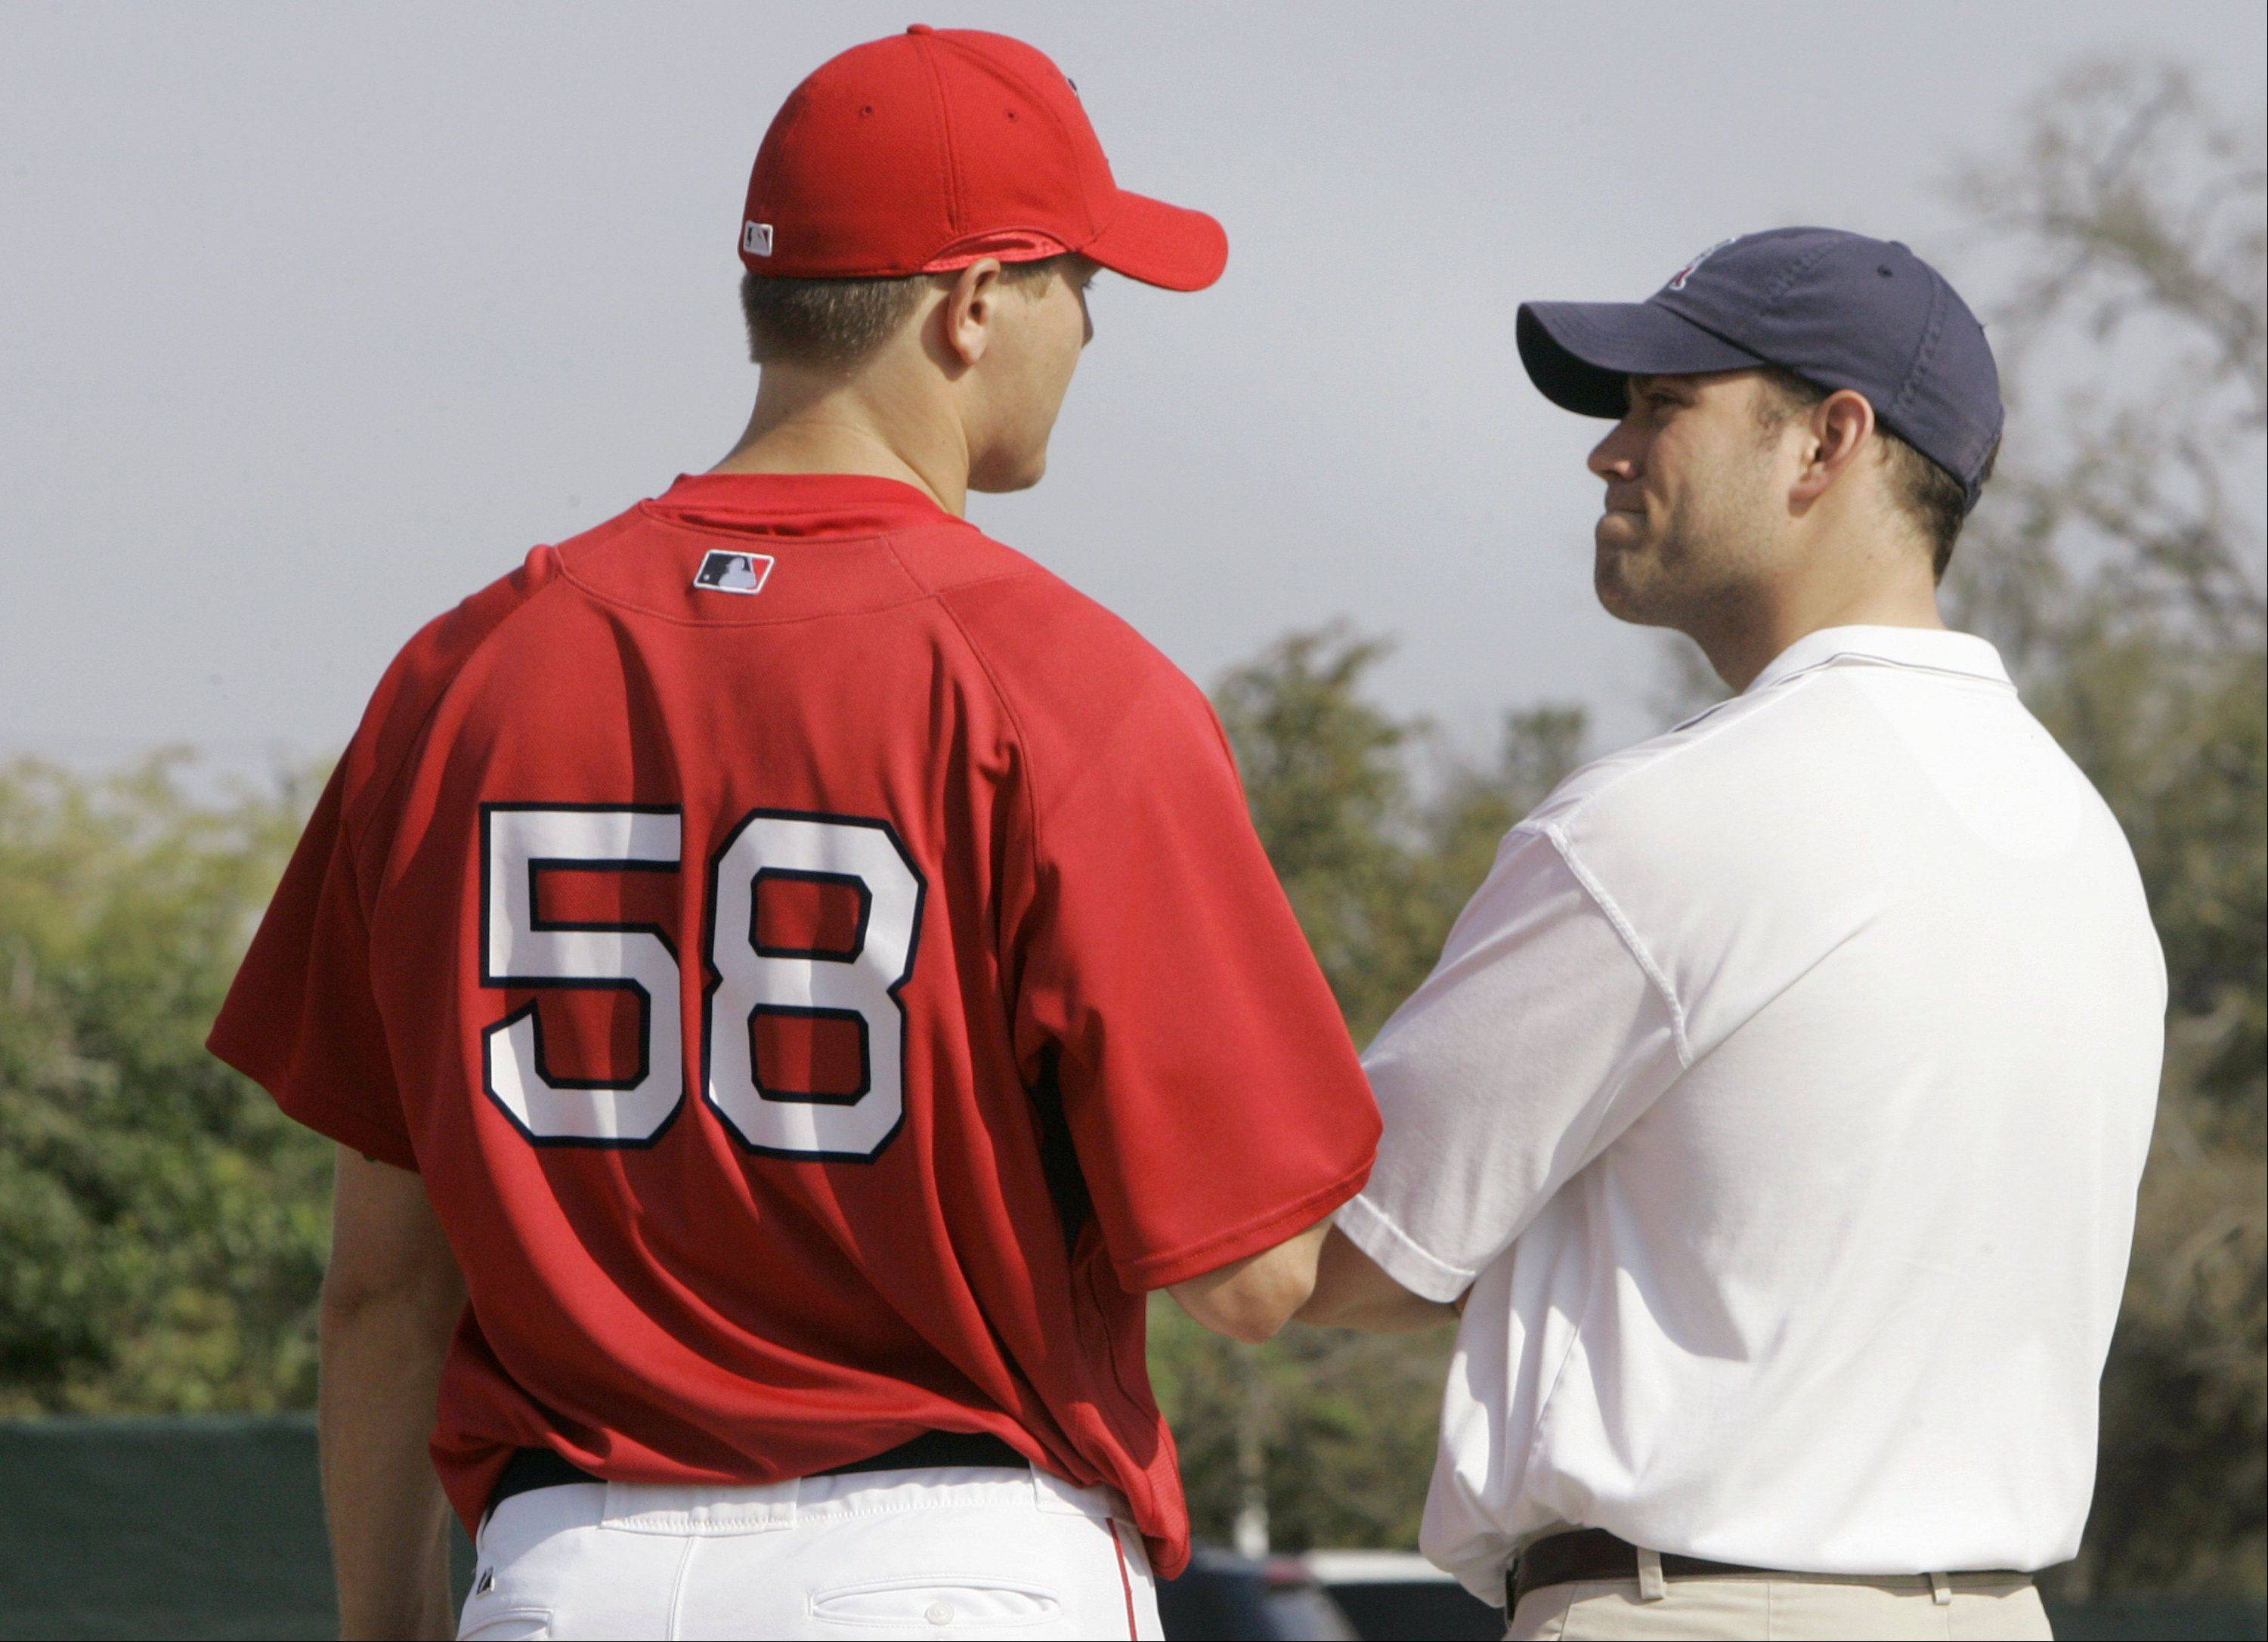 Boston Red Sox pitcher Jonathan Papelbon, left, talks with general manager Theo Epstein during a spring training baseball practice in Fort Myers, Fla., Wednesday March 14, 2007. Papelbon was switched from a closer to a starter this spring, but the Red Sox have moved the 26-year-old right-hander back into the closer role to fill a major void in the bullpen.